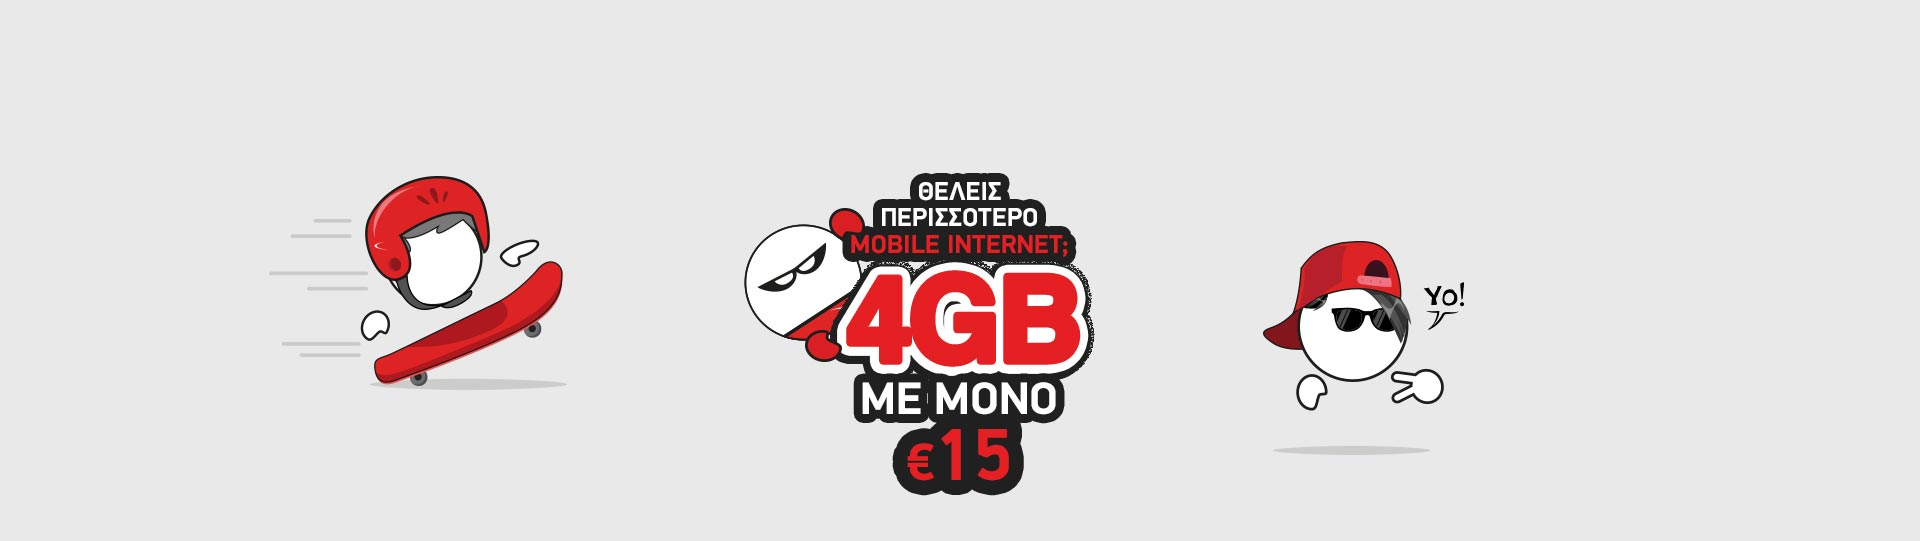 Foto - 4GB Mobile Internet